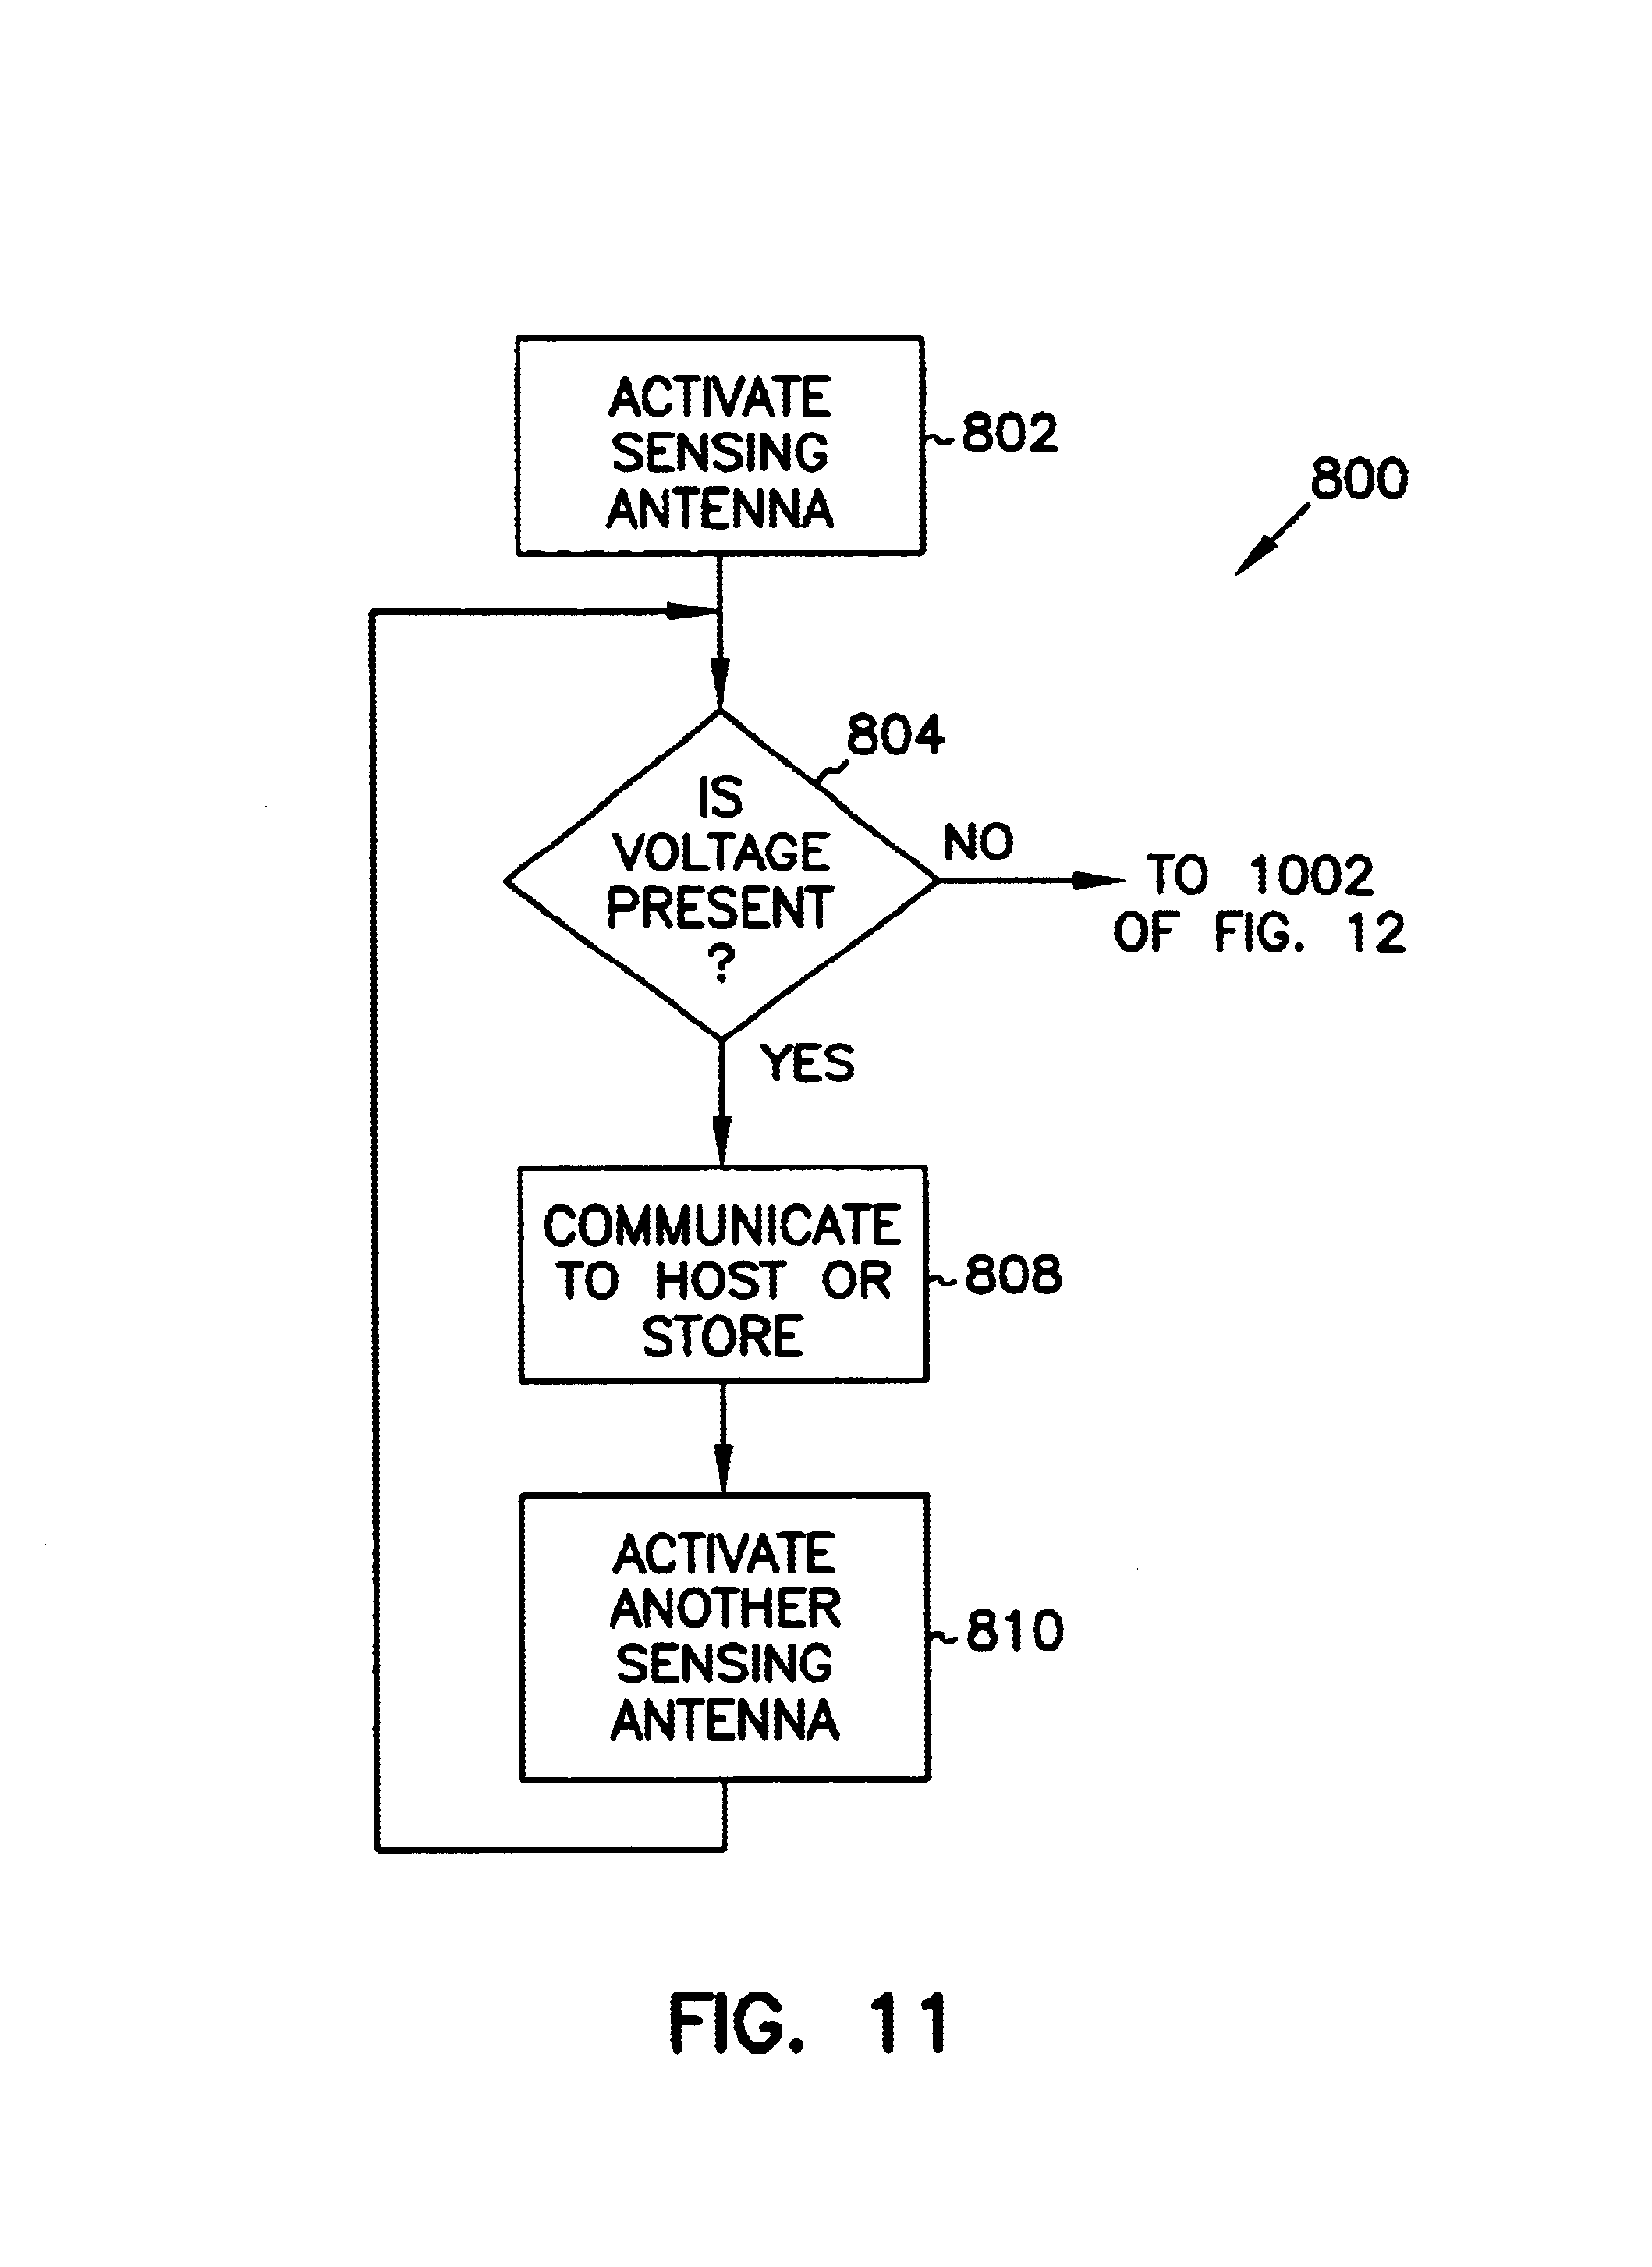 Passive Rfid Tag Circuit Smart Wiring Diagrams Diagram Patent Us6714121 Material Tracking Method And Military Tags